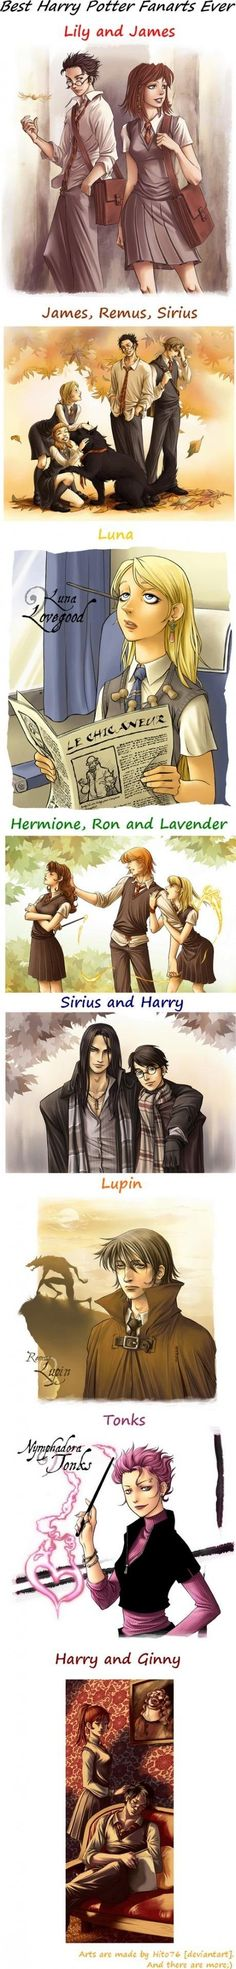 All of her work is amazeballs- and her rendition of Sirius? Beyond drool worthy.  http://hito76.deviantart.com/